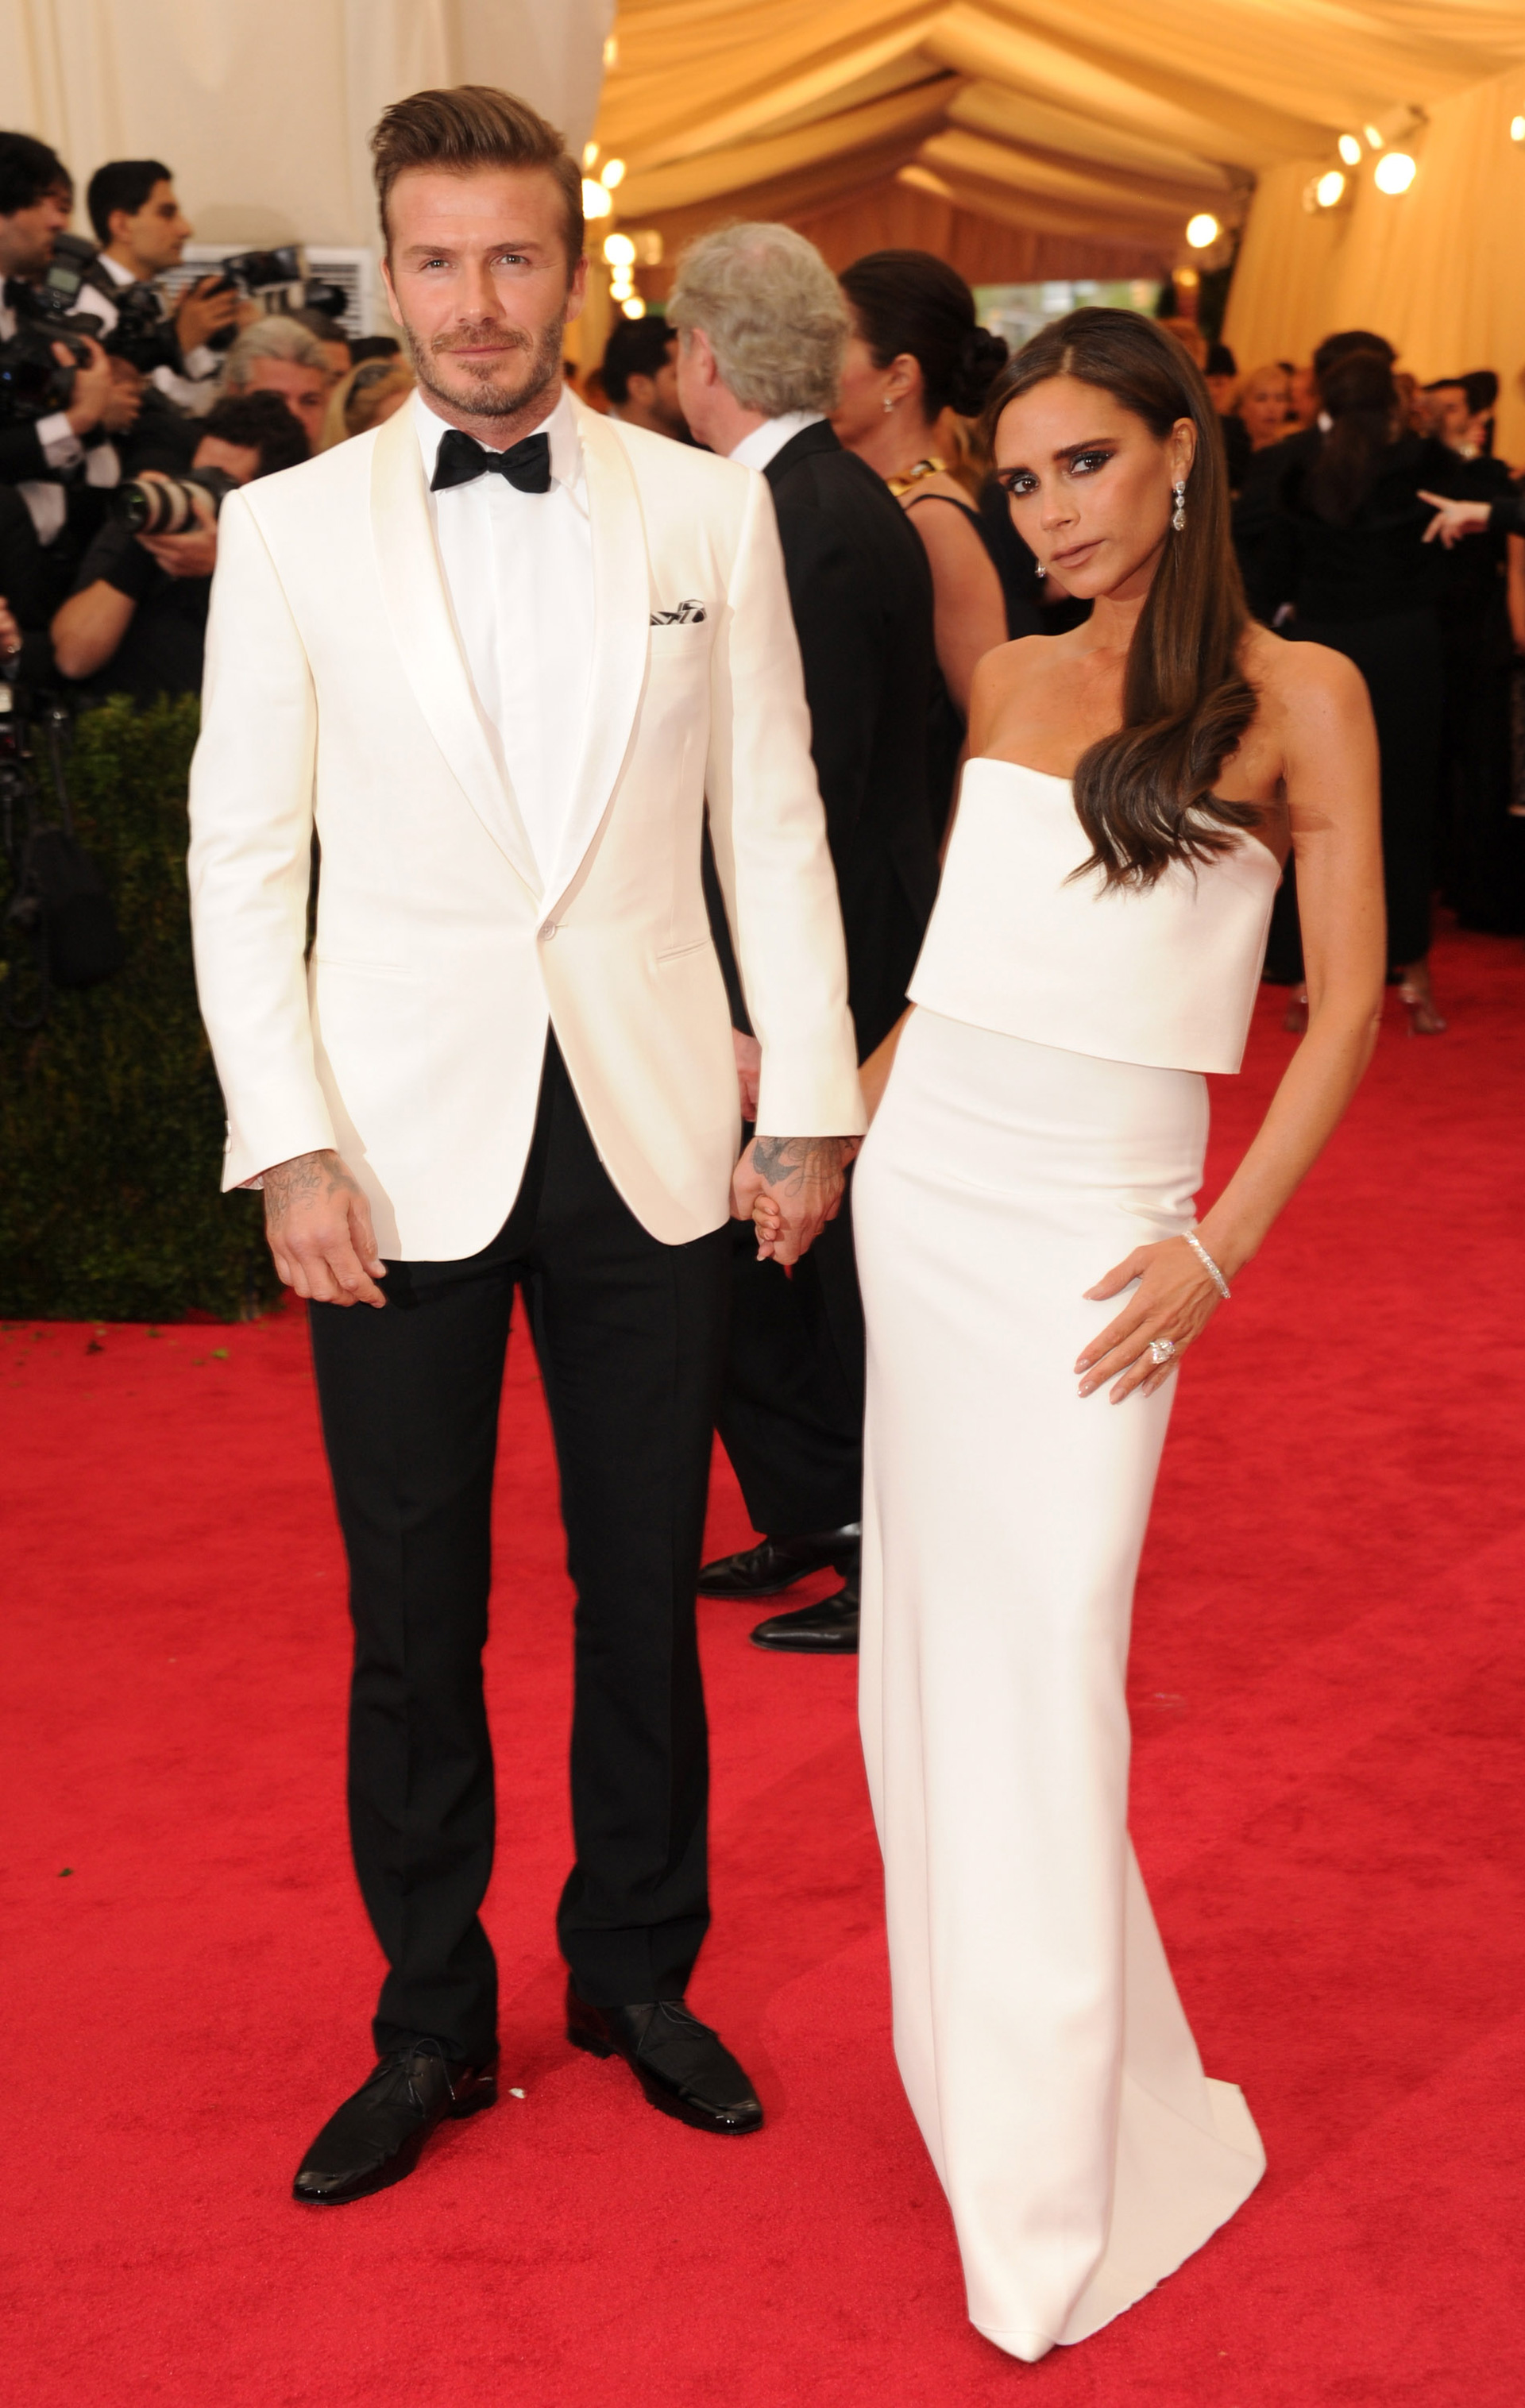 at the 2014 Met Gala